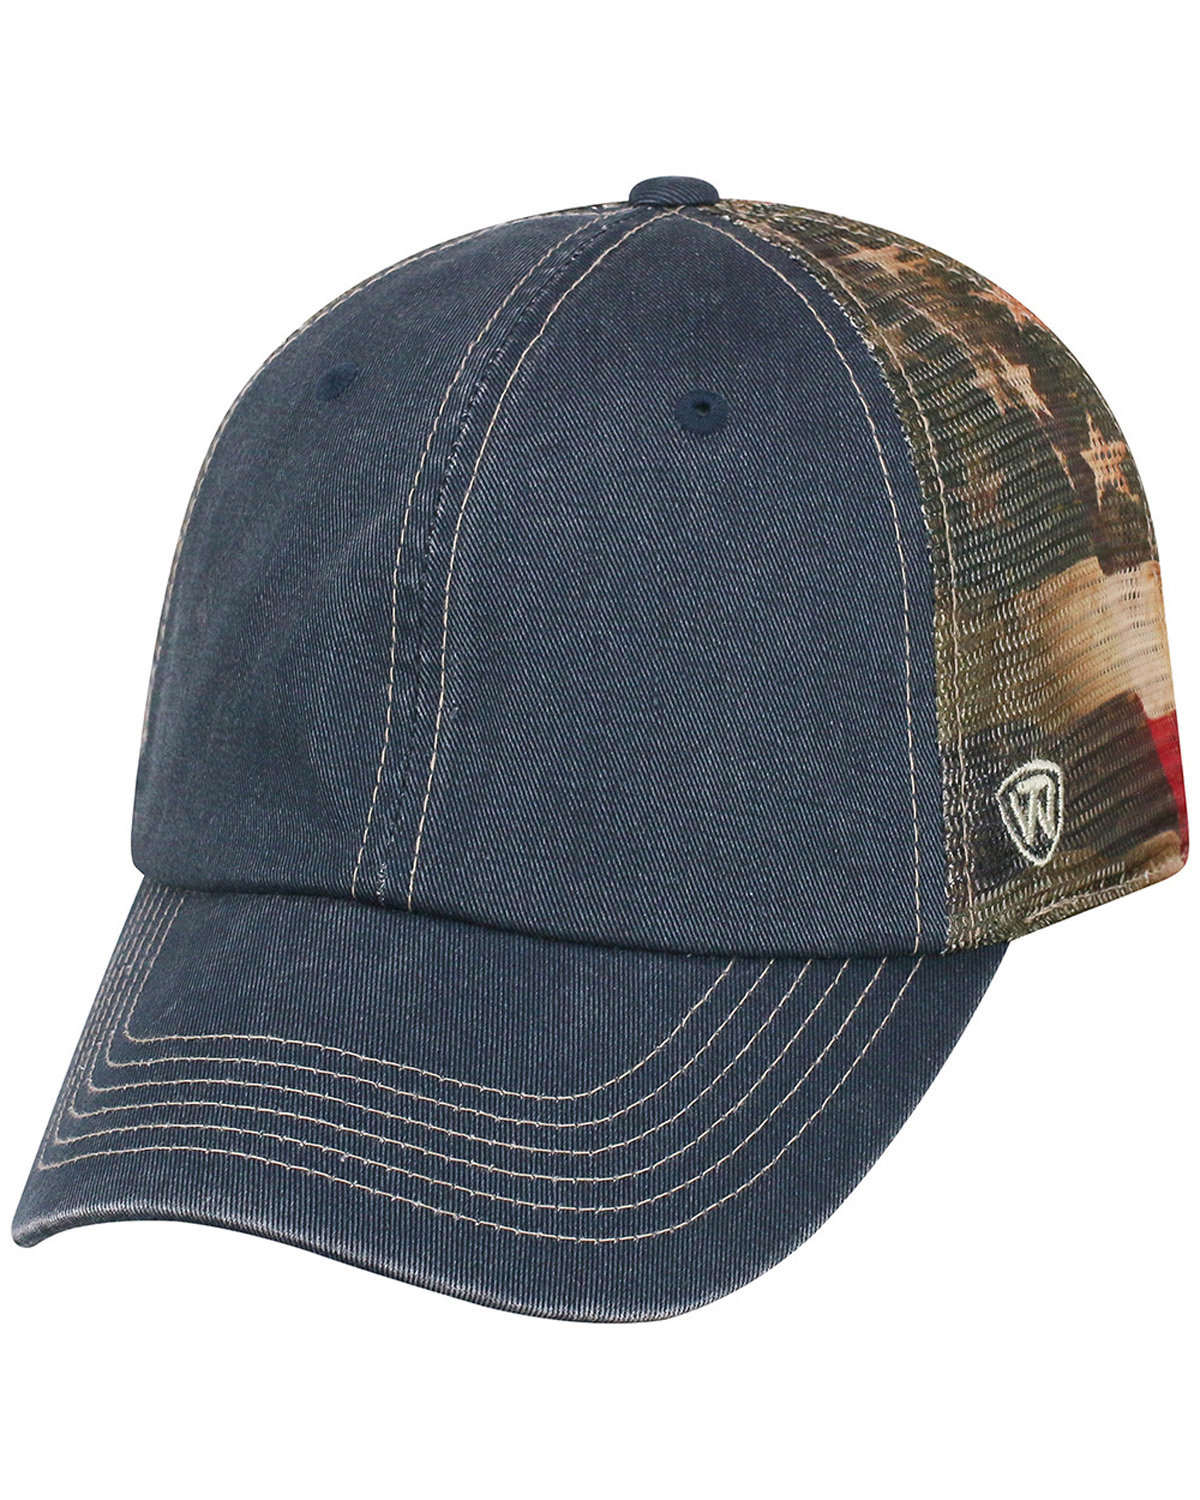 Top Of The World Adult Offroad Cap FLAGTACULAR